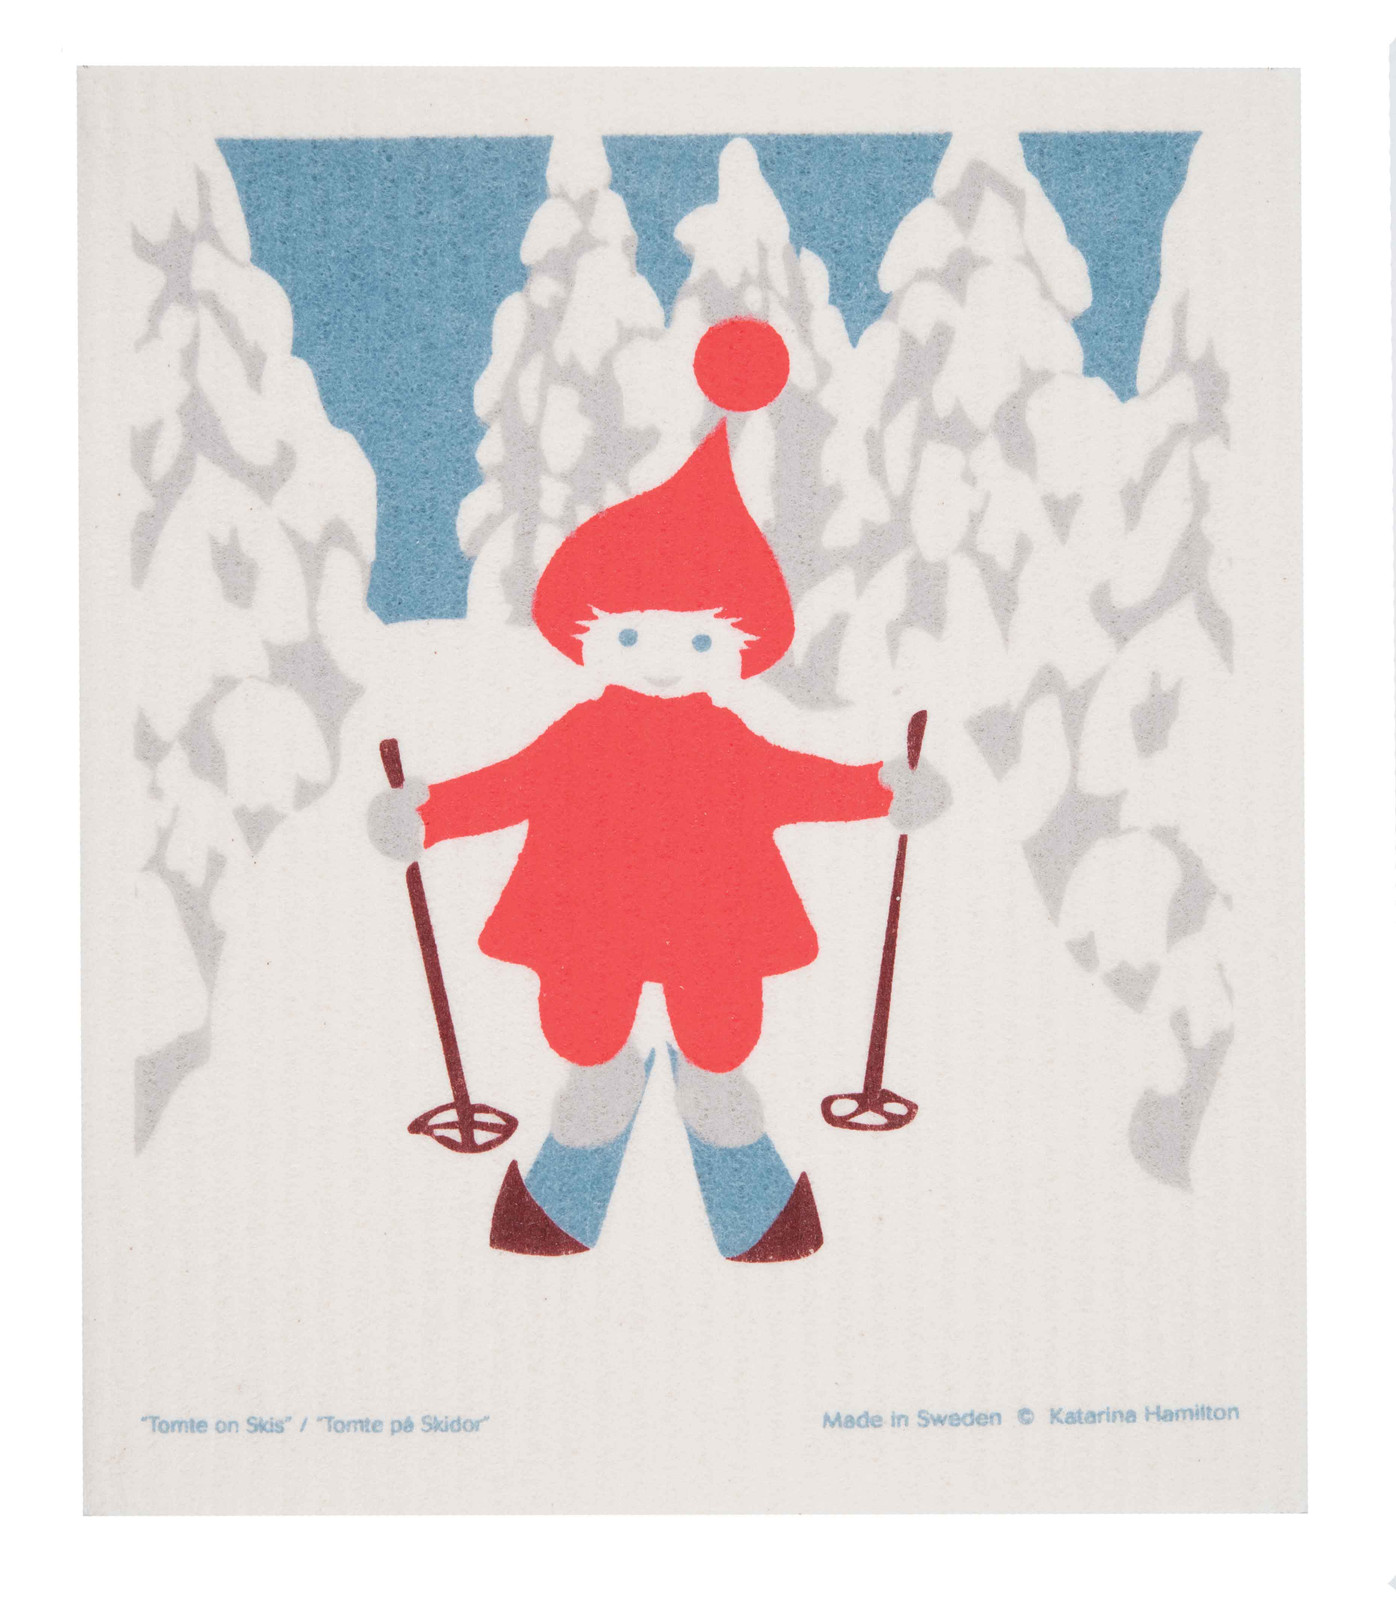 Swedish Christmas Dishcloth - Skiing Tomte